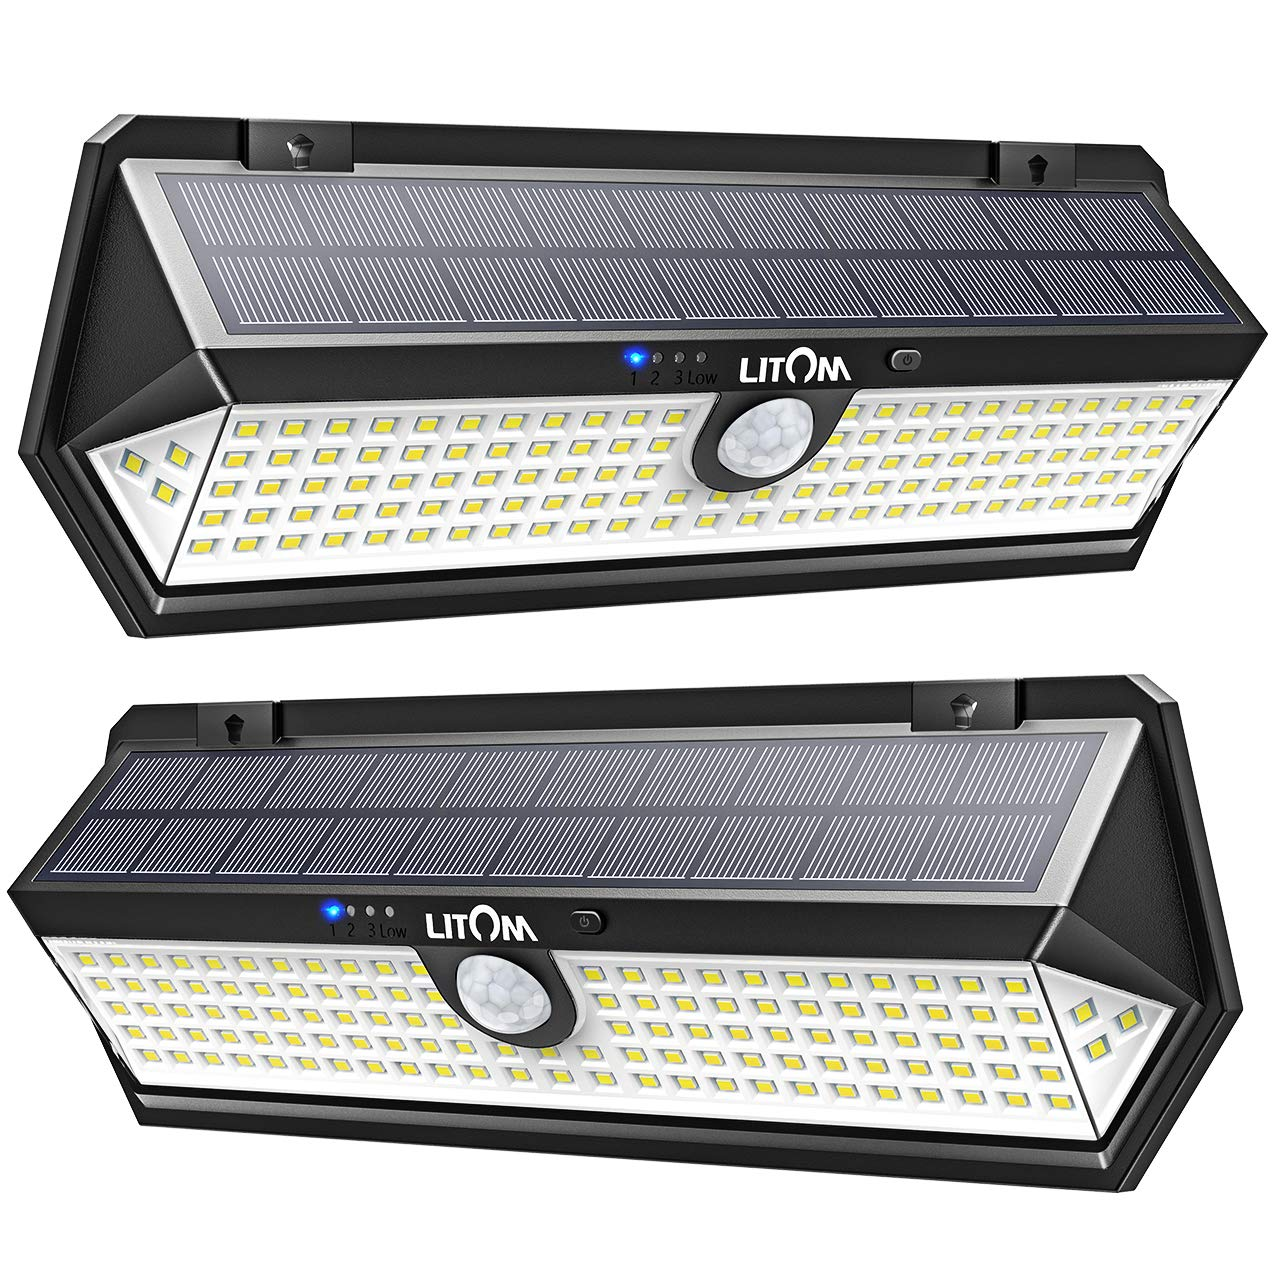 LITOM Solar Lights Outdoor Newest Version, 122 LED 1.8W Solar Motion Sensor Lights with 270°Wide Angle, Easy-to-Install, IP67 Waterproof Solar Lights for Front Door, Yard, Garage, Deck-2 Pack